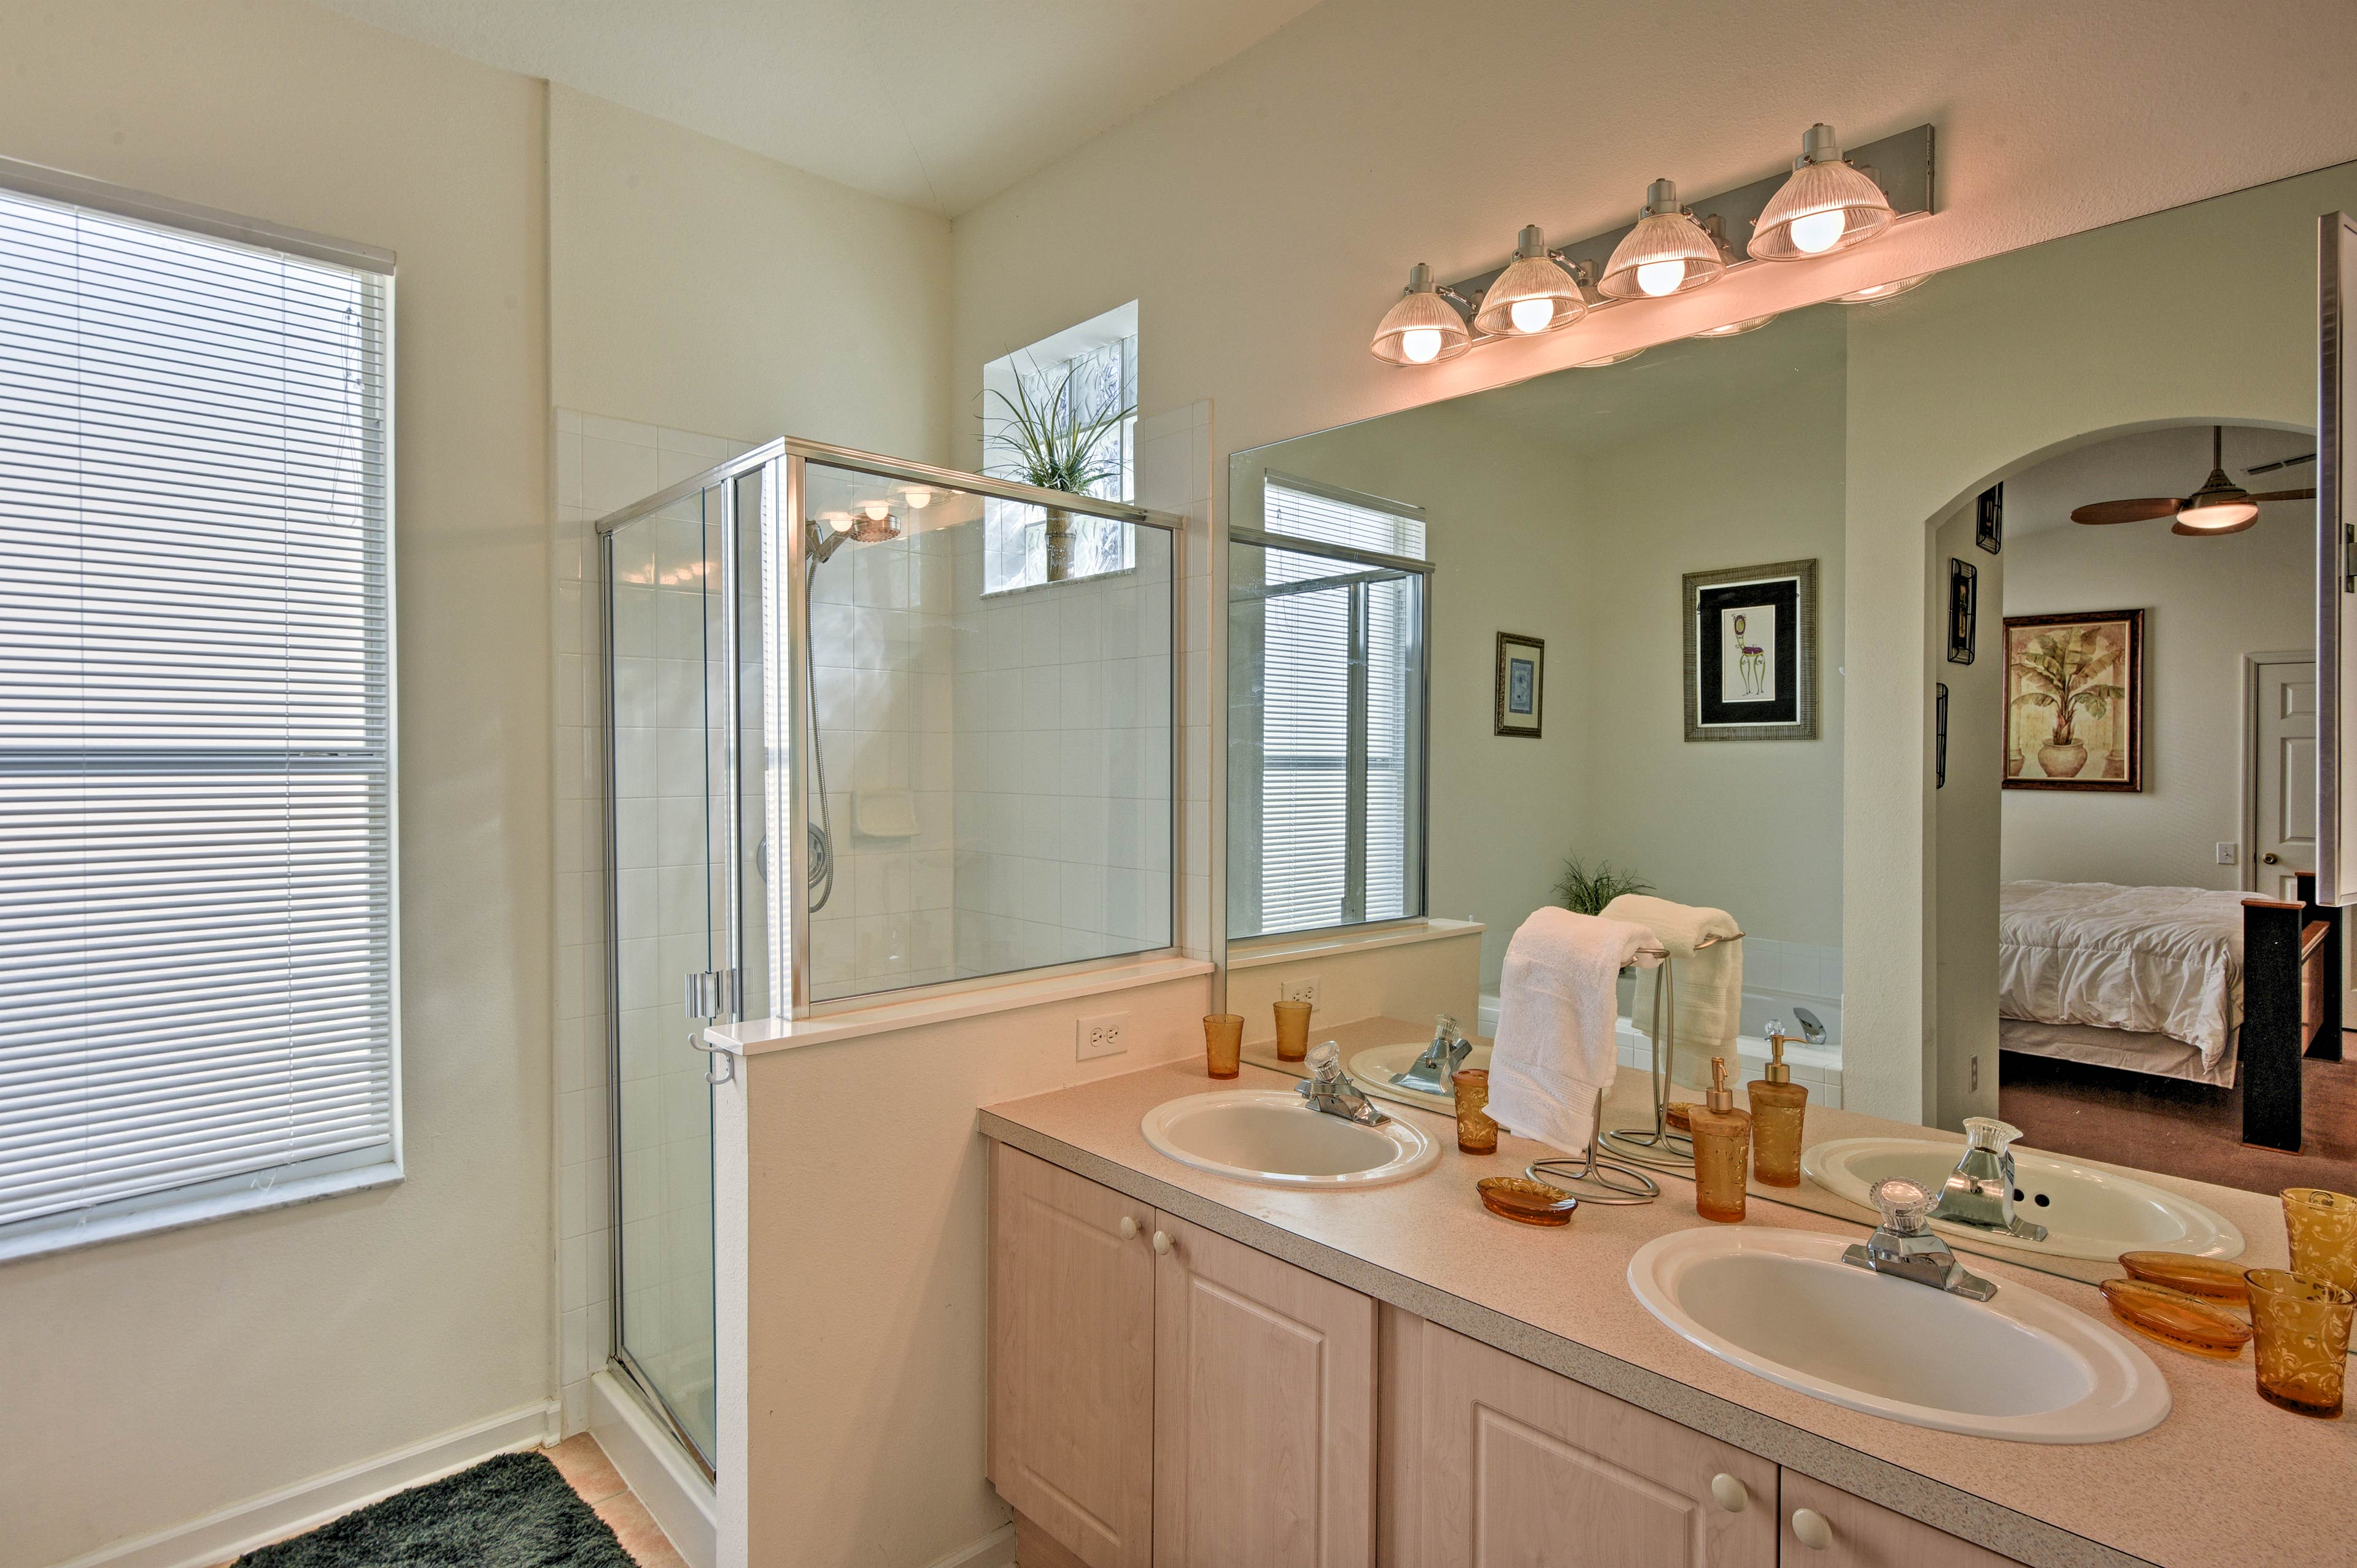 Wake up and rinse off in the en-suite bathroom with a walk-in shower.